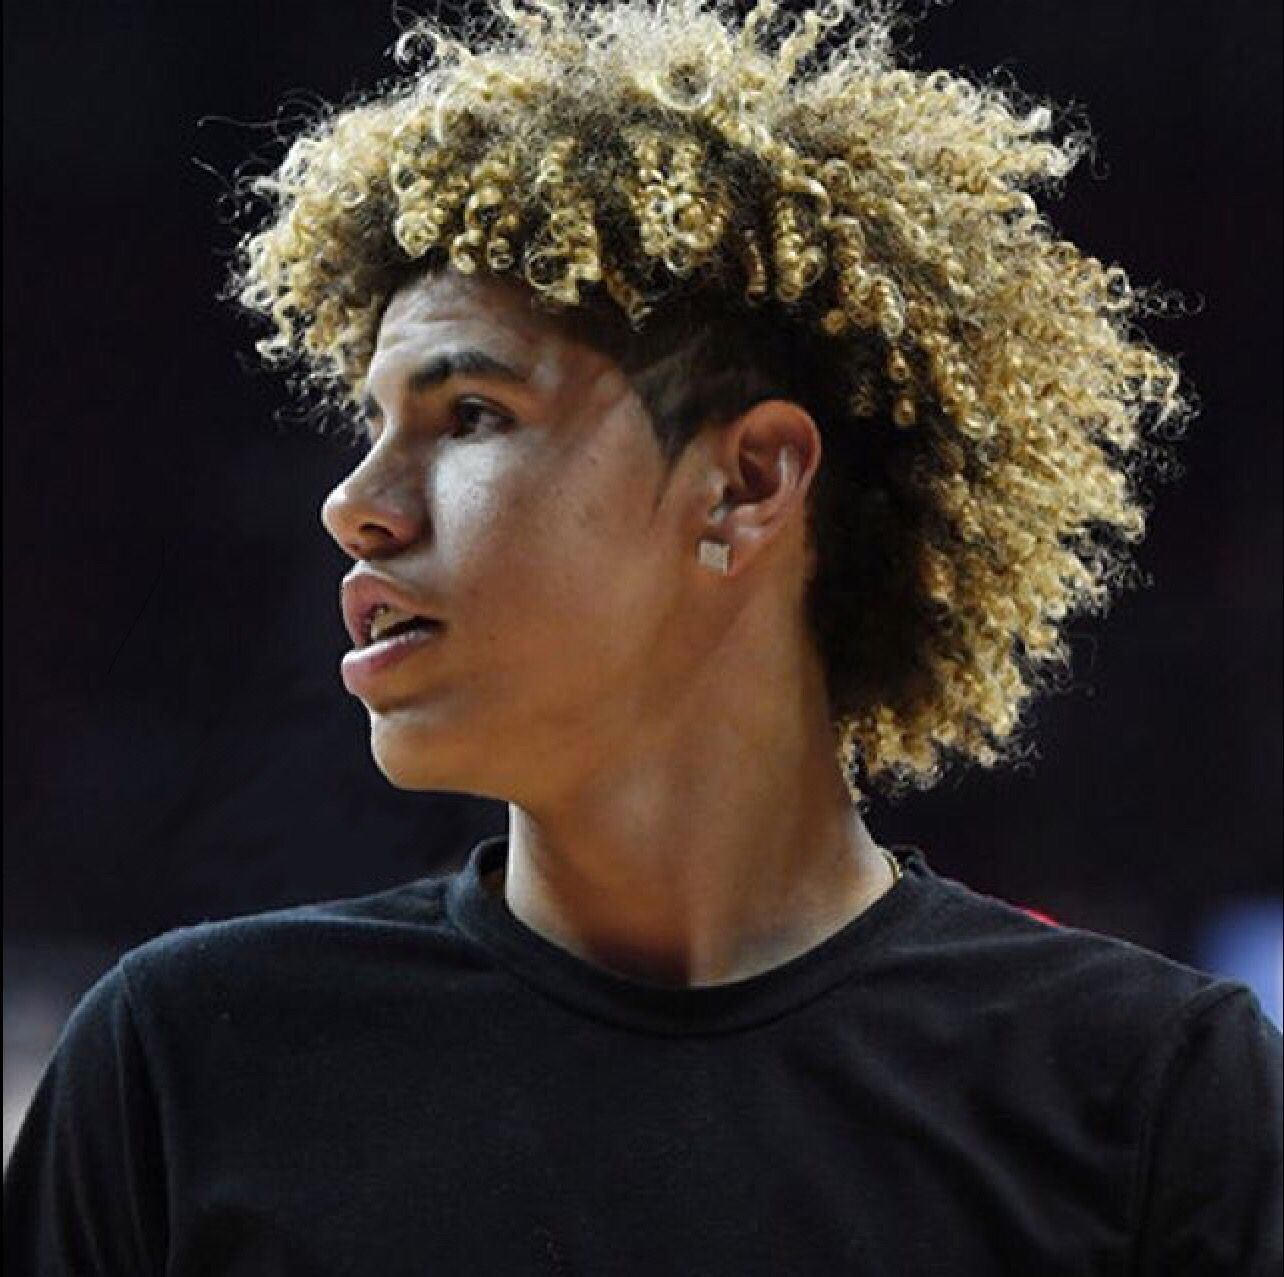 Lamelo Lamelo Ball Basketball Hairstyles Curly Hair Men